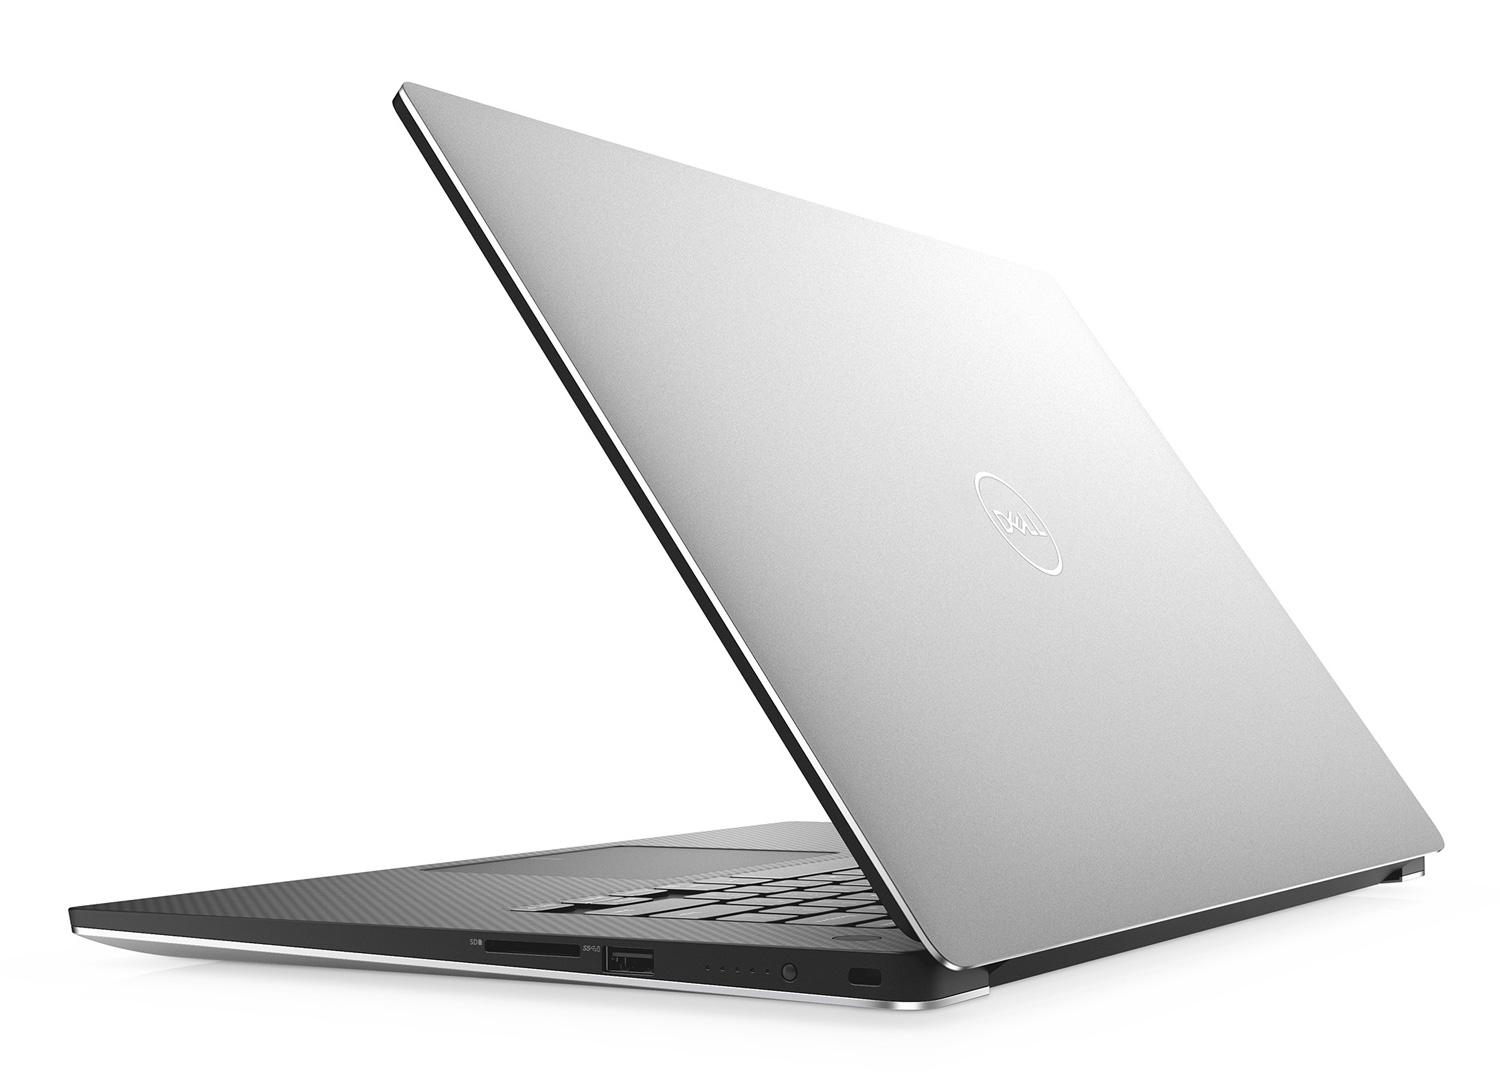 Ordinateur portable Dell XPS 15 7590 (1680) - OLED 4K, GTX 1650, SSD 1 To - photo 6